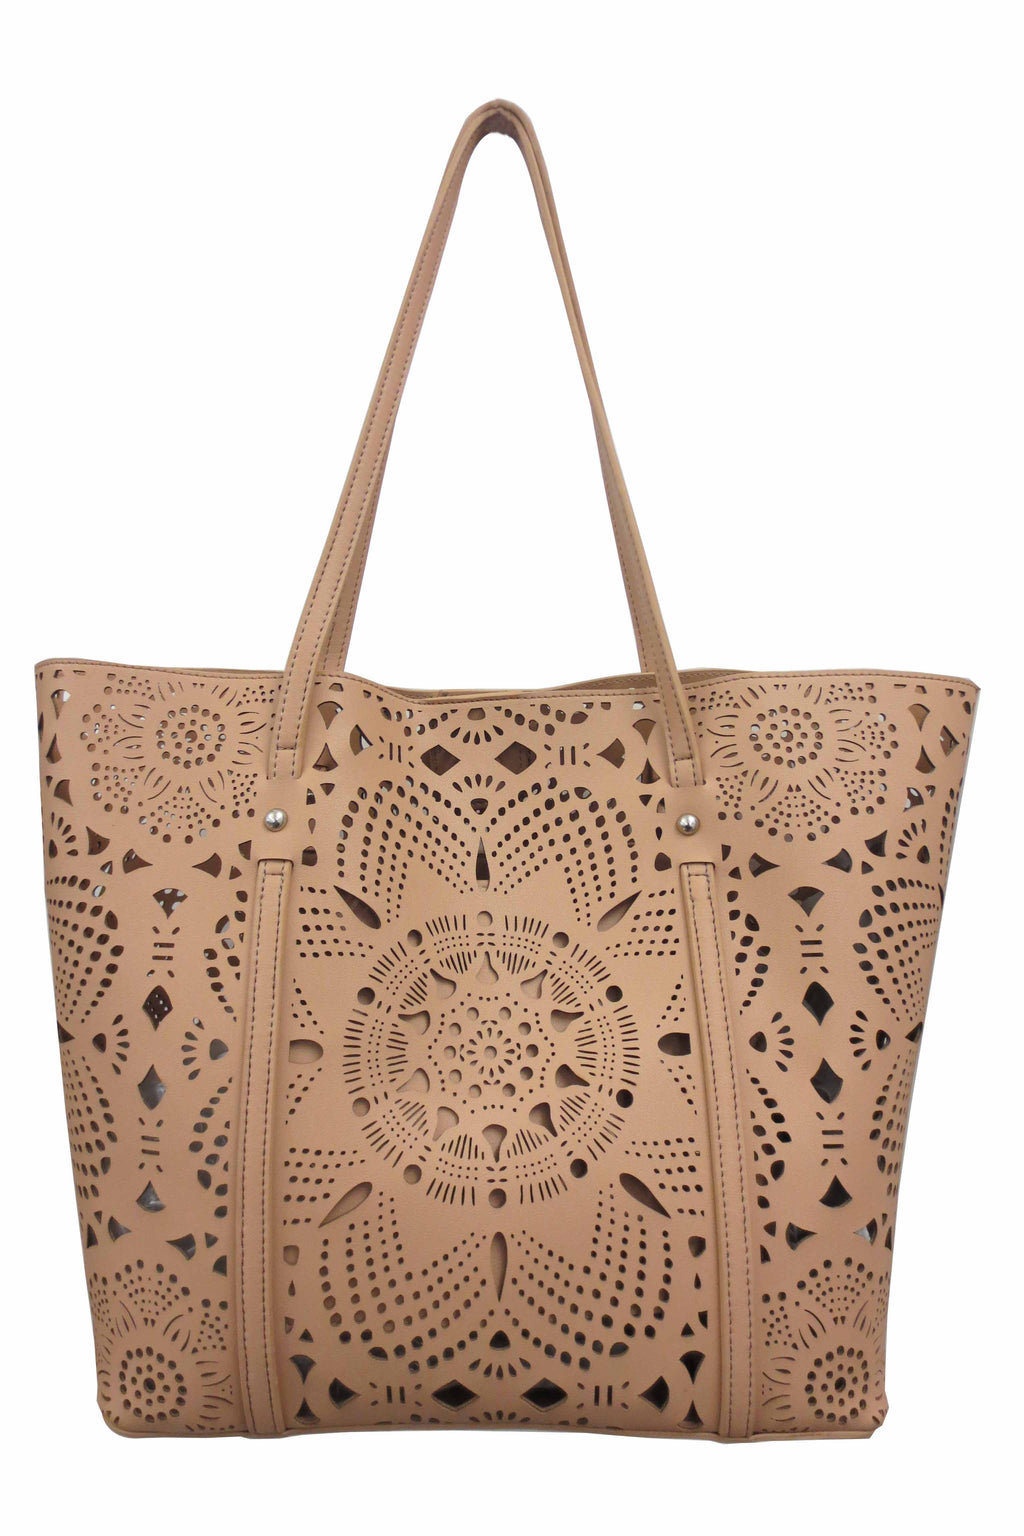 SRB25527 - Laser Cut Flower Tote in Natural by Sondra Roberts. This airy, lazer cut nappa lightweight tote is a beautiful update. Faux leather. Imported